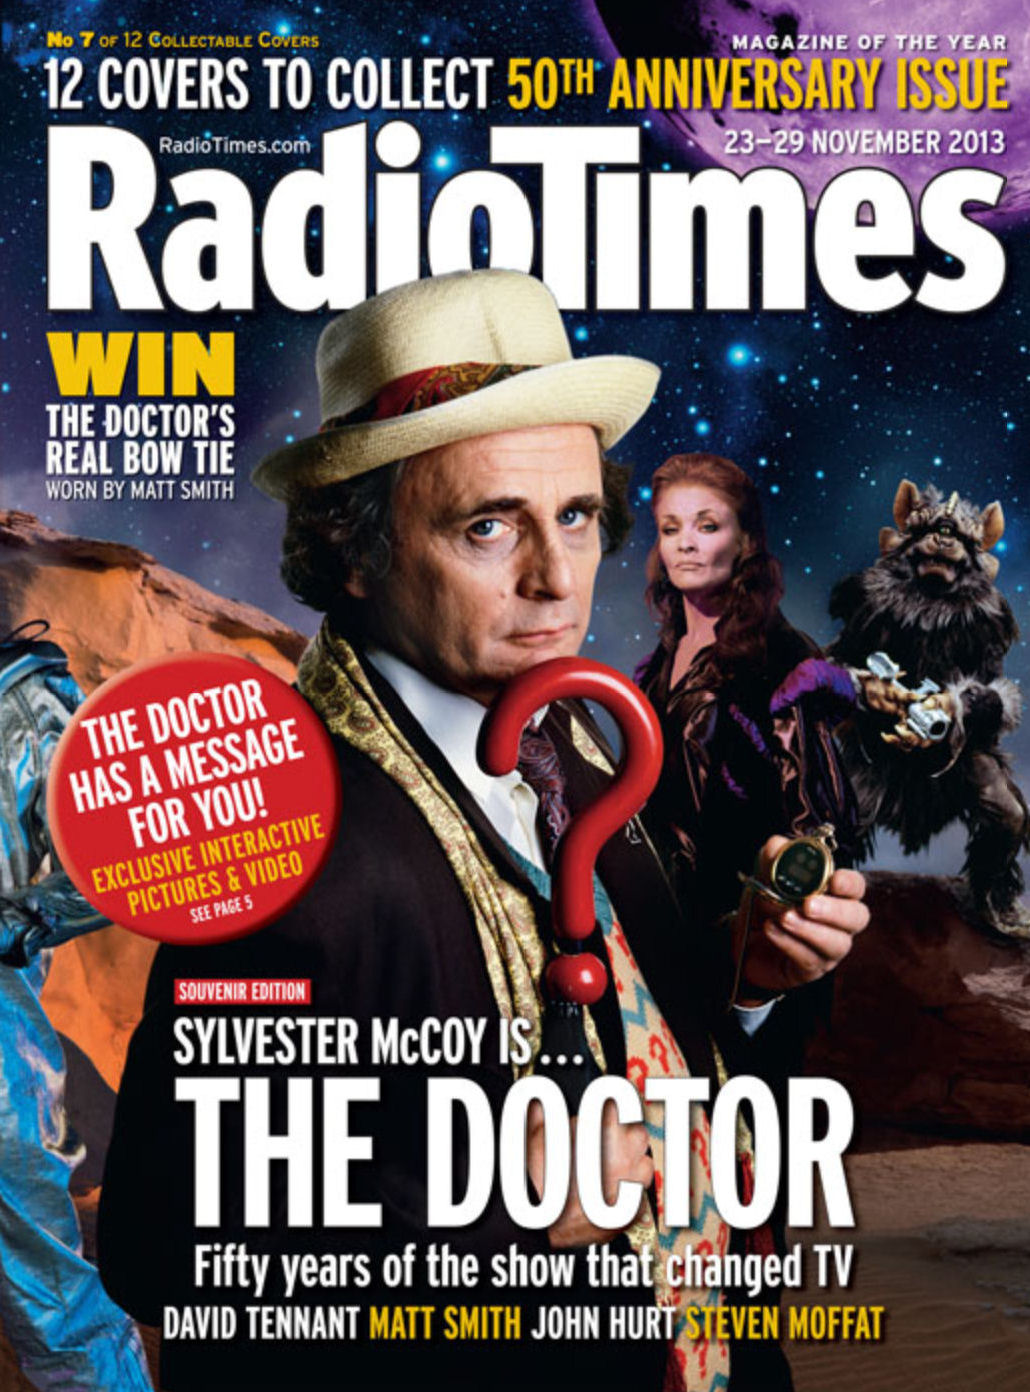 Free Animated Wallpaper For Android Tablet Radio Times 50th Anniversary Covers Planet Mondasplanet